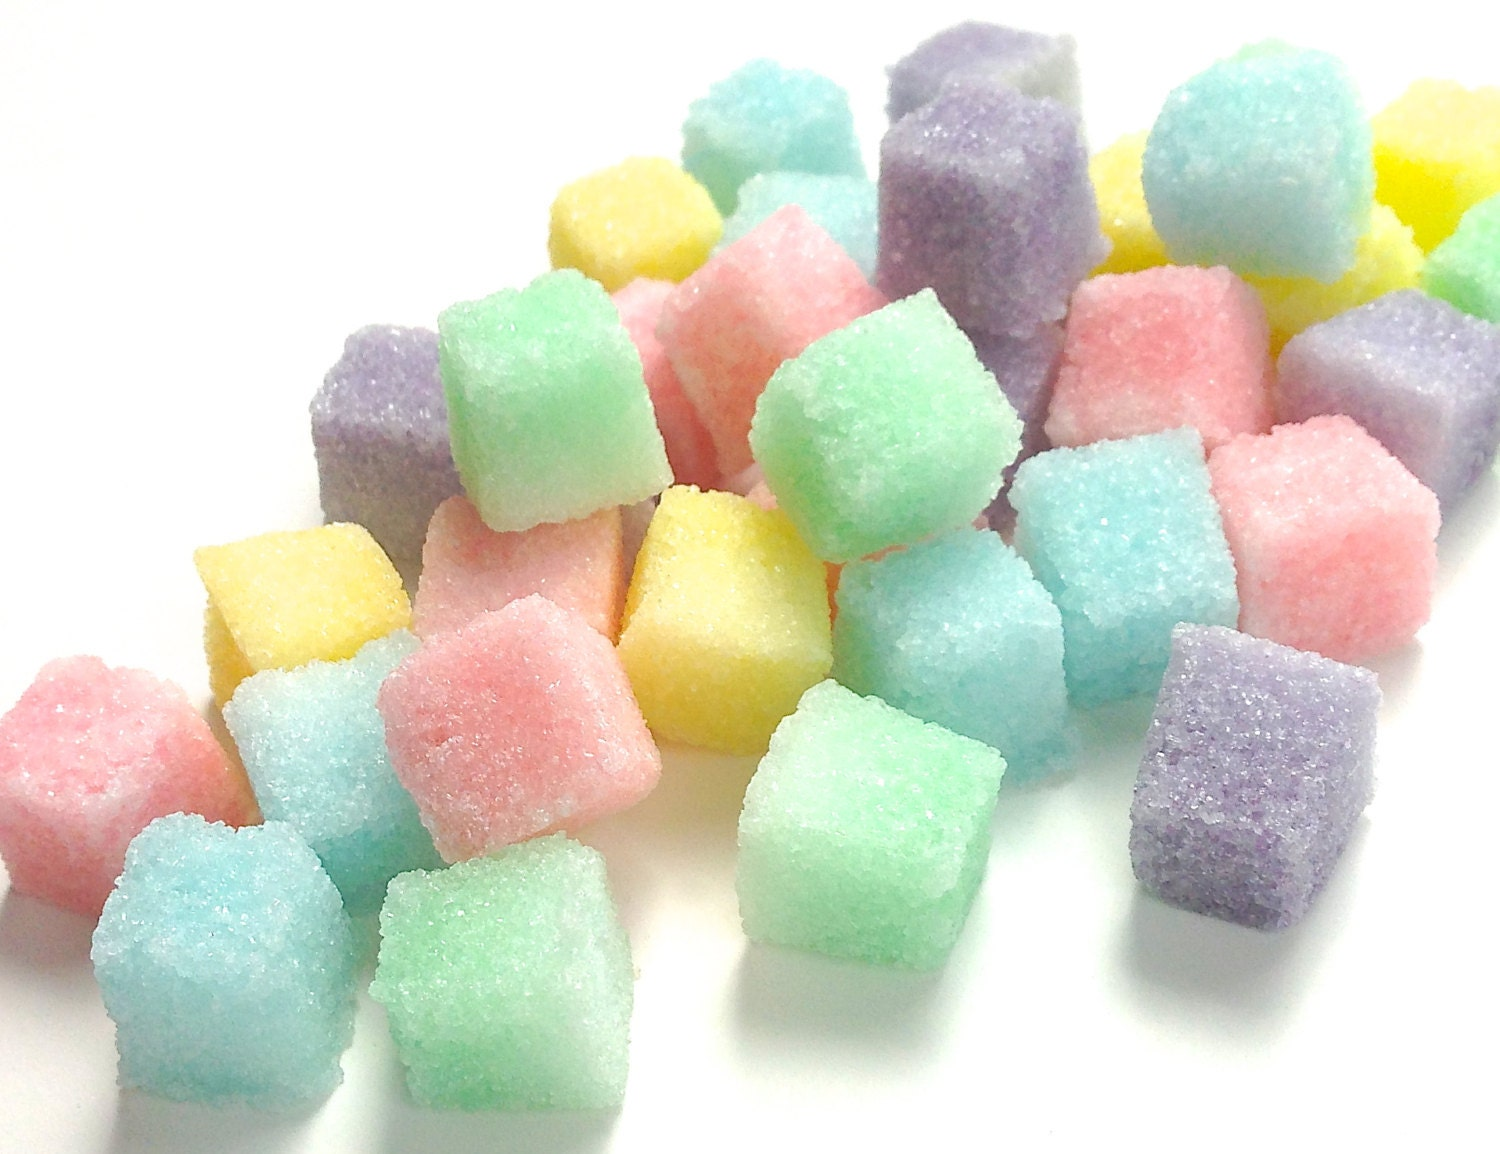 Pastel Colored Sugar Cubes for Tea Parties Champagne Toasts